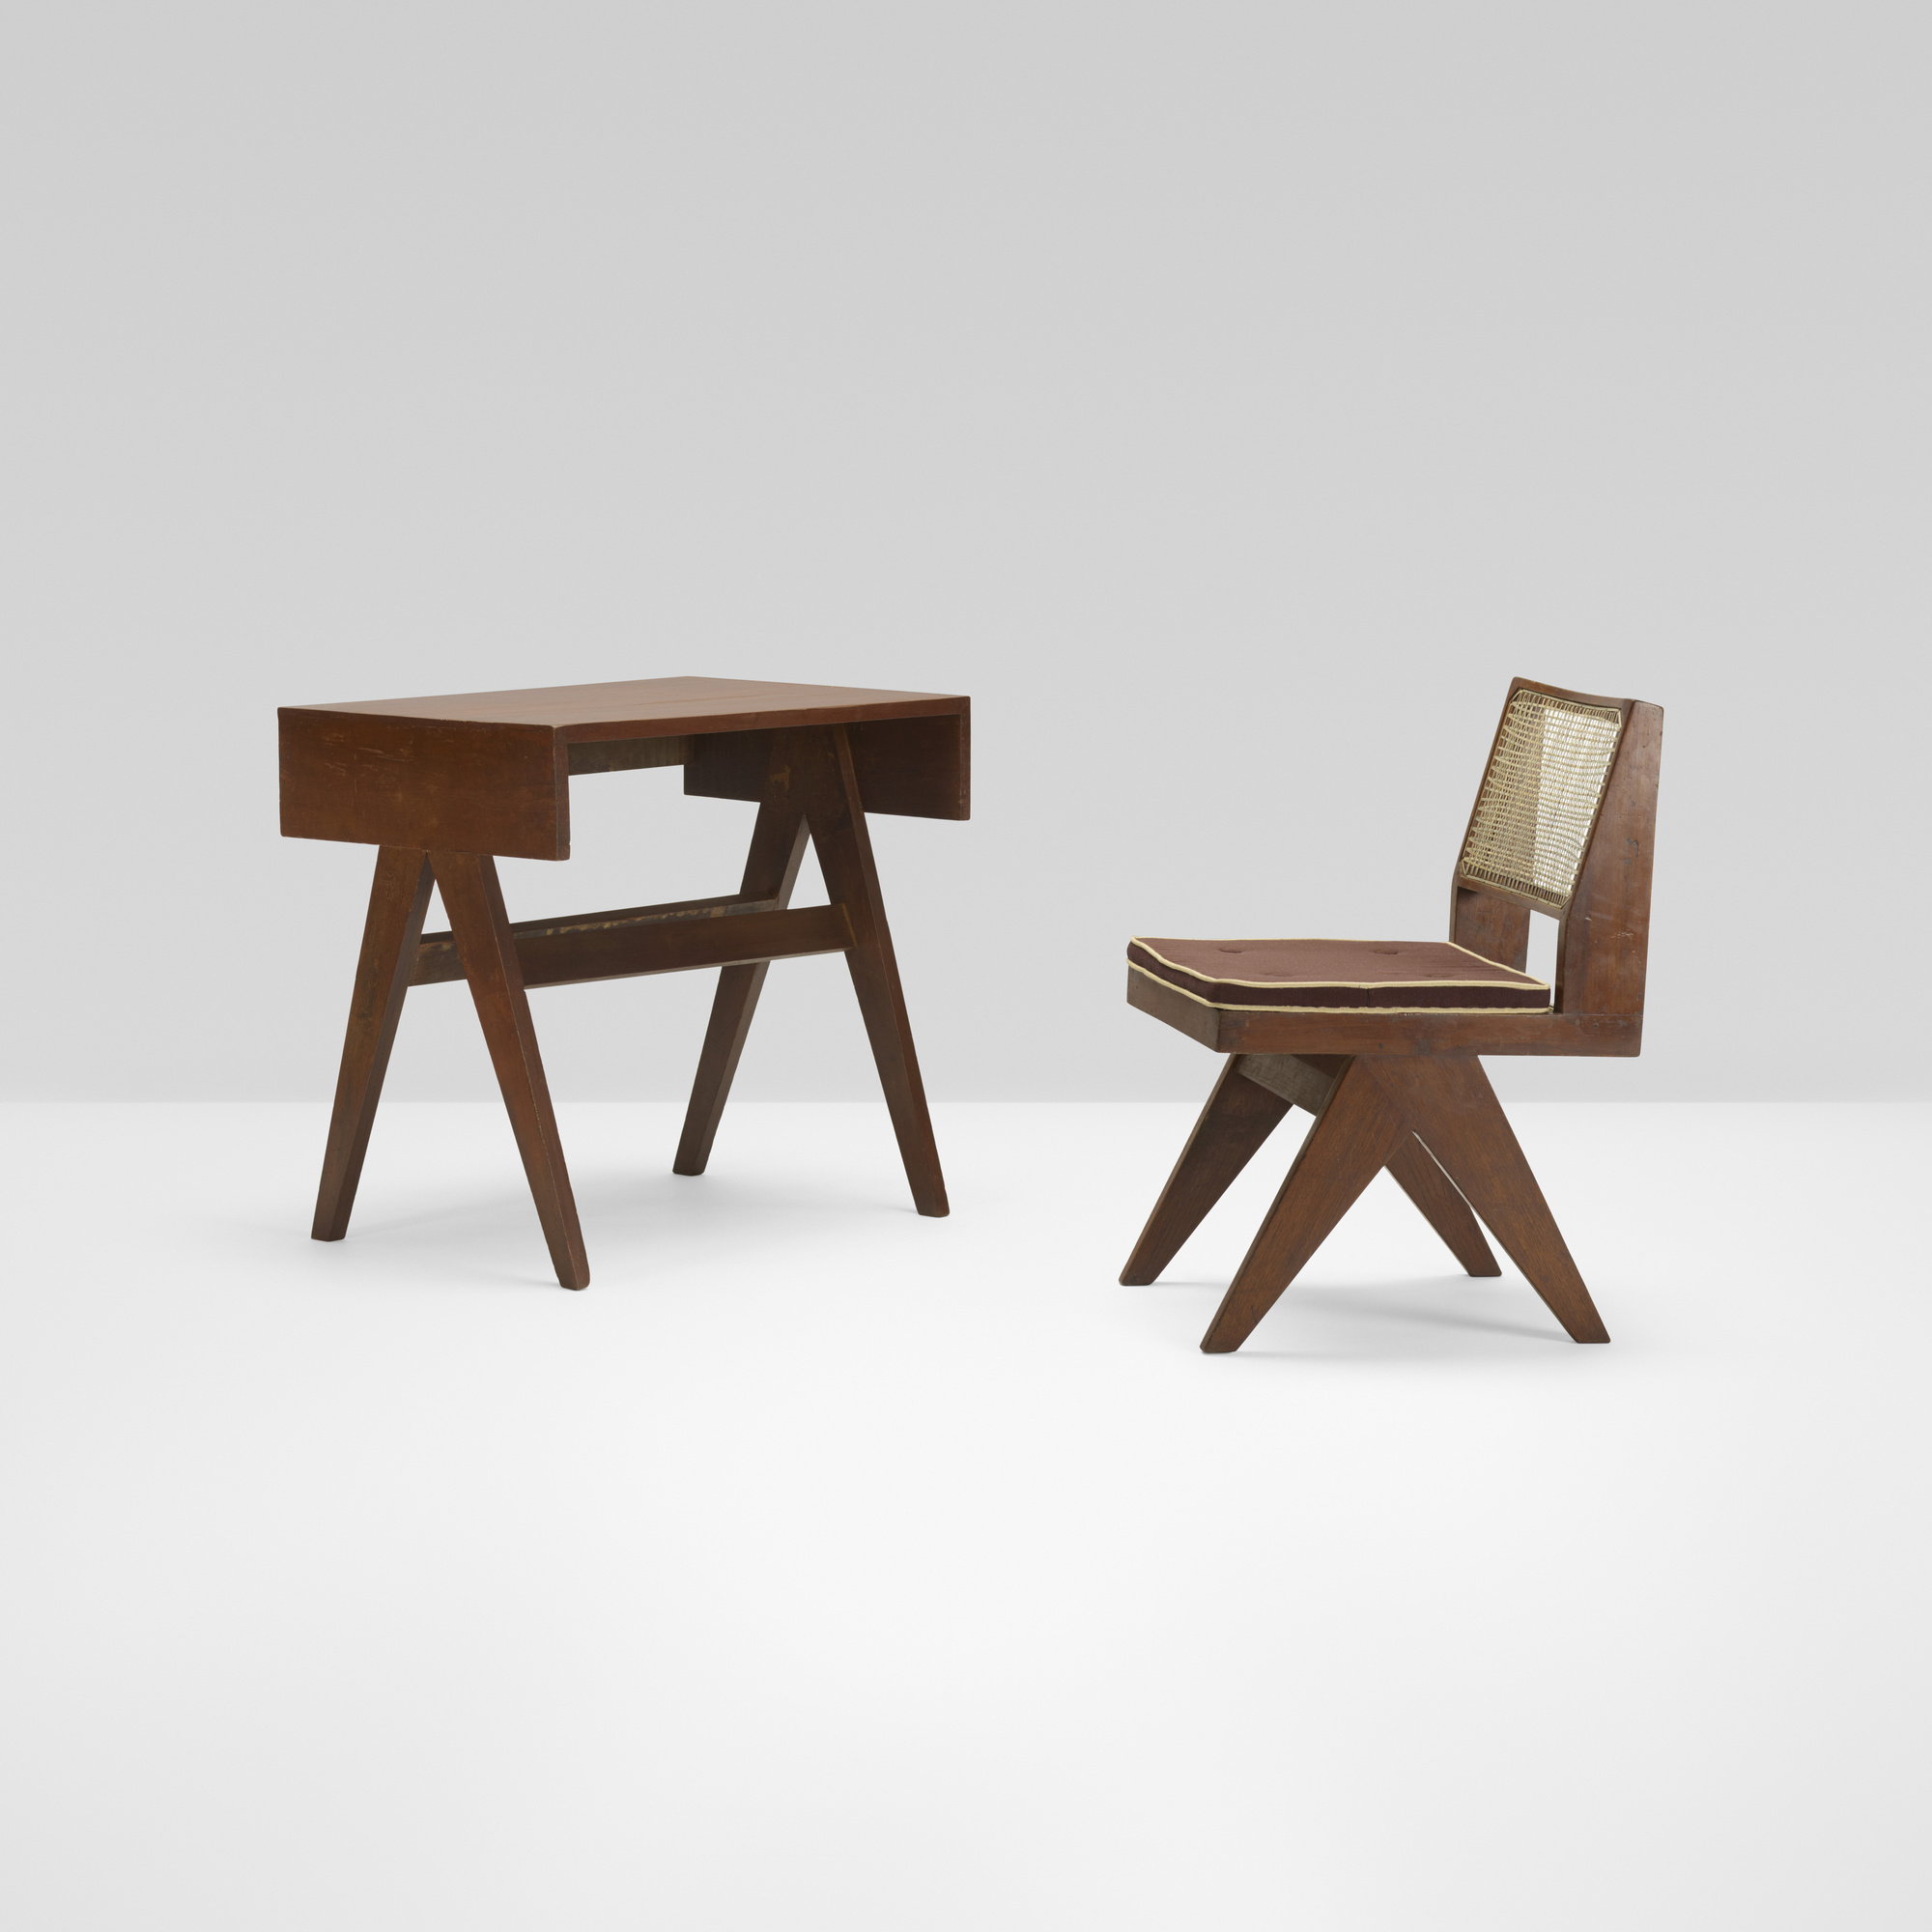 329 Pierre Jeanneret petit desk and chair from Chandigarh